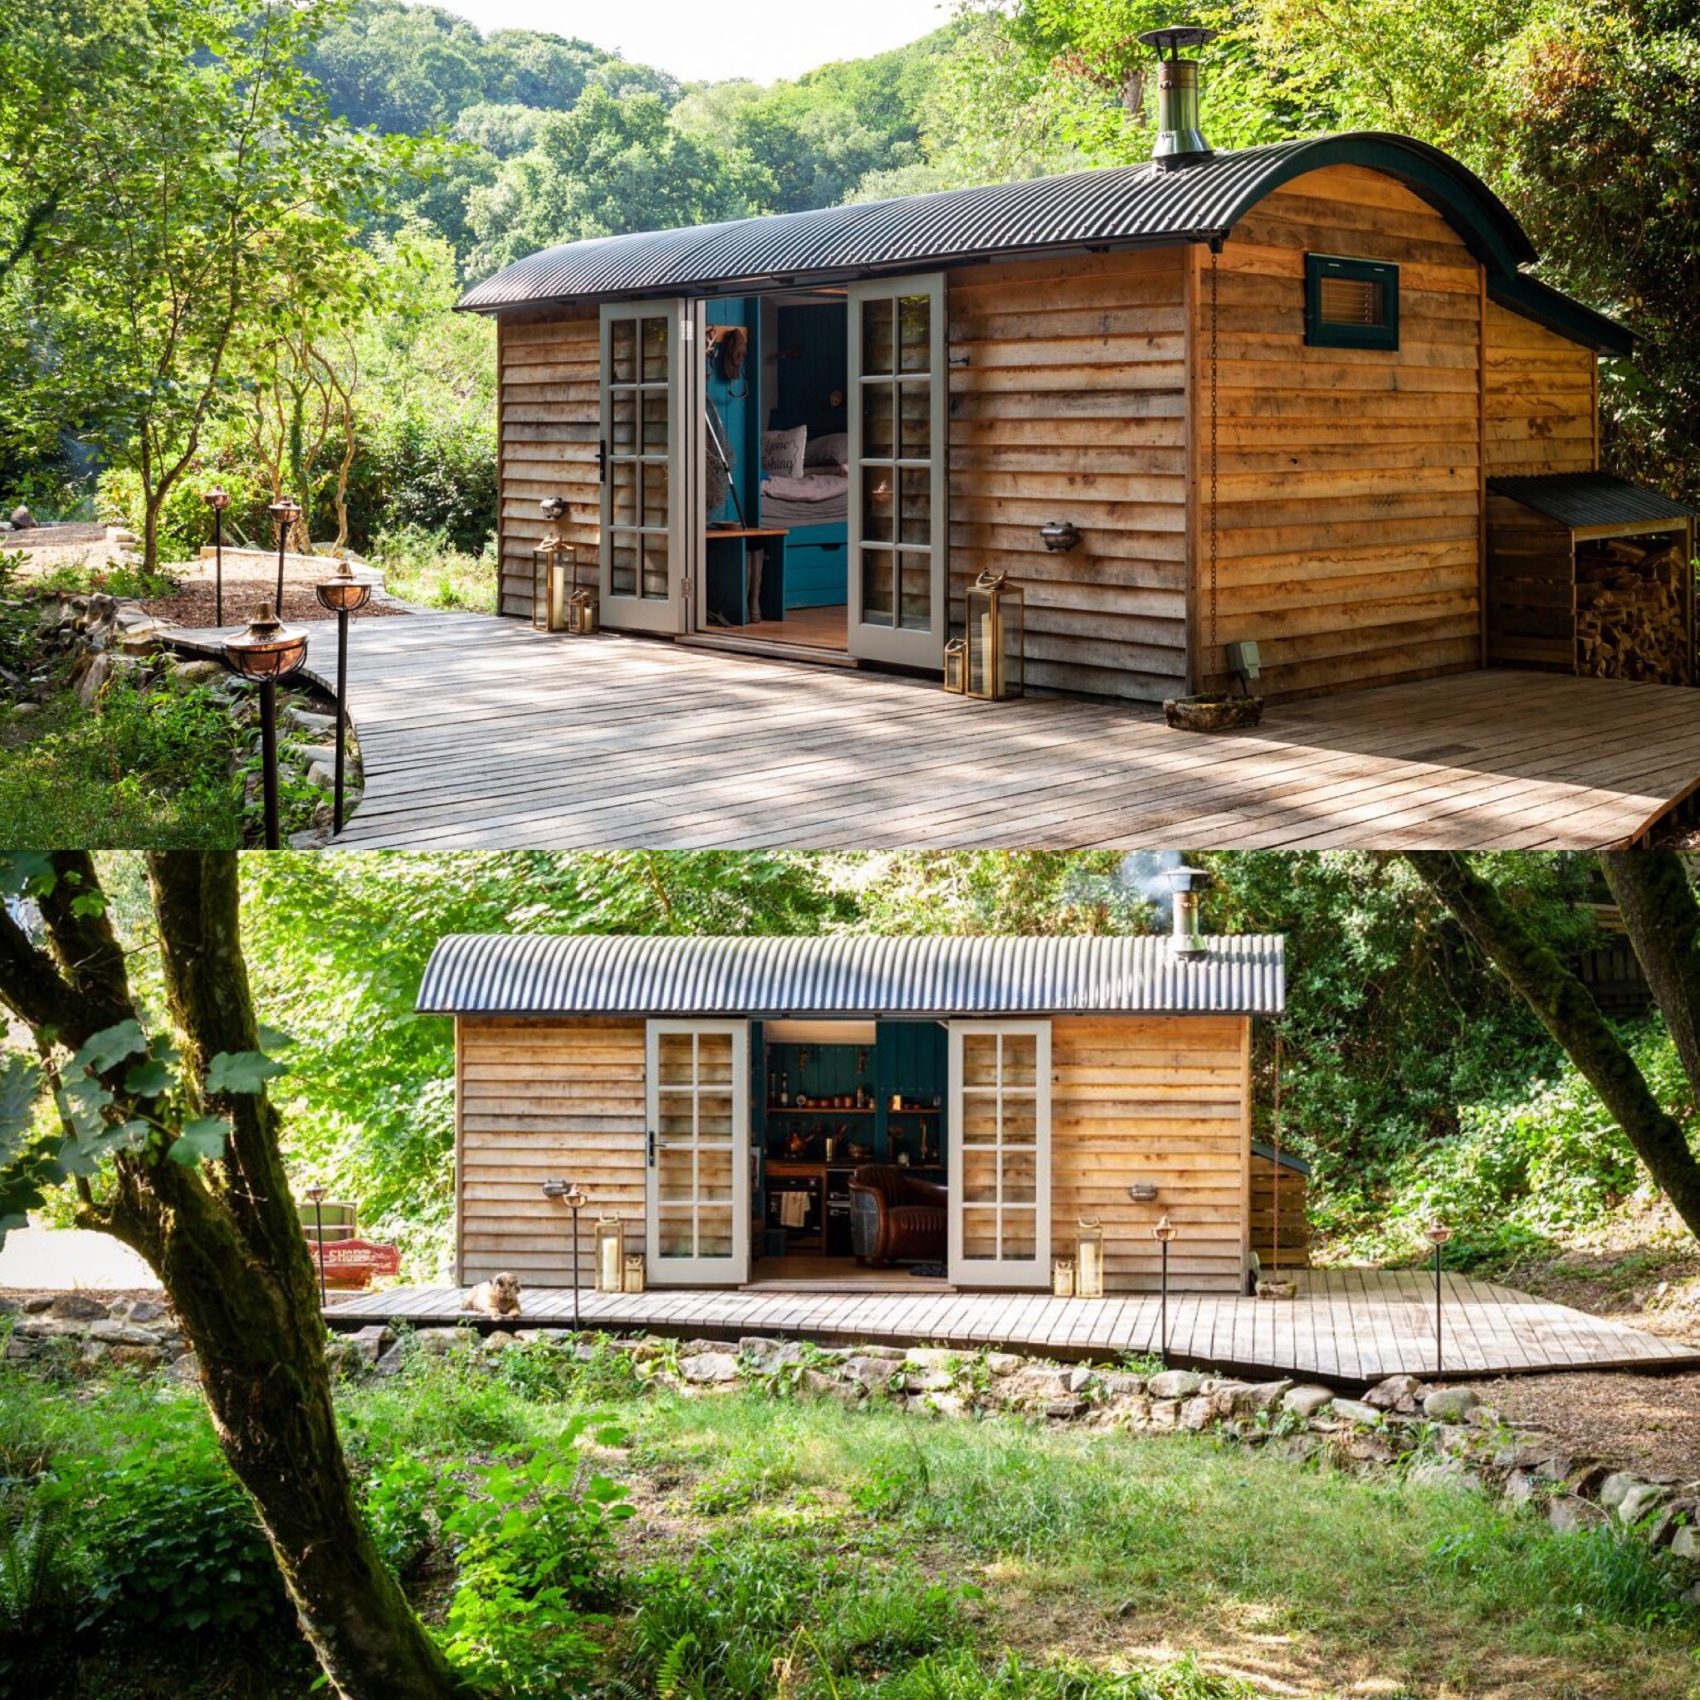 shepherds hut, river walkham, river banks, bridge, cosy, wood burner, woodland lodge, ever after, accommodation, 2019